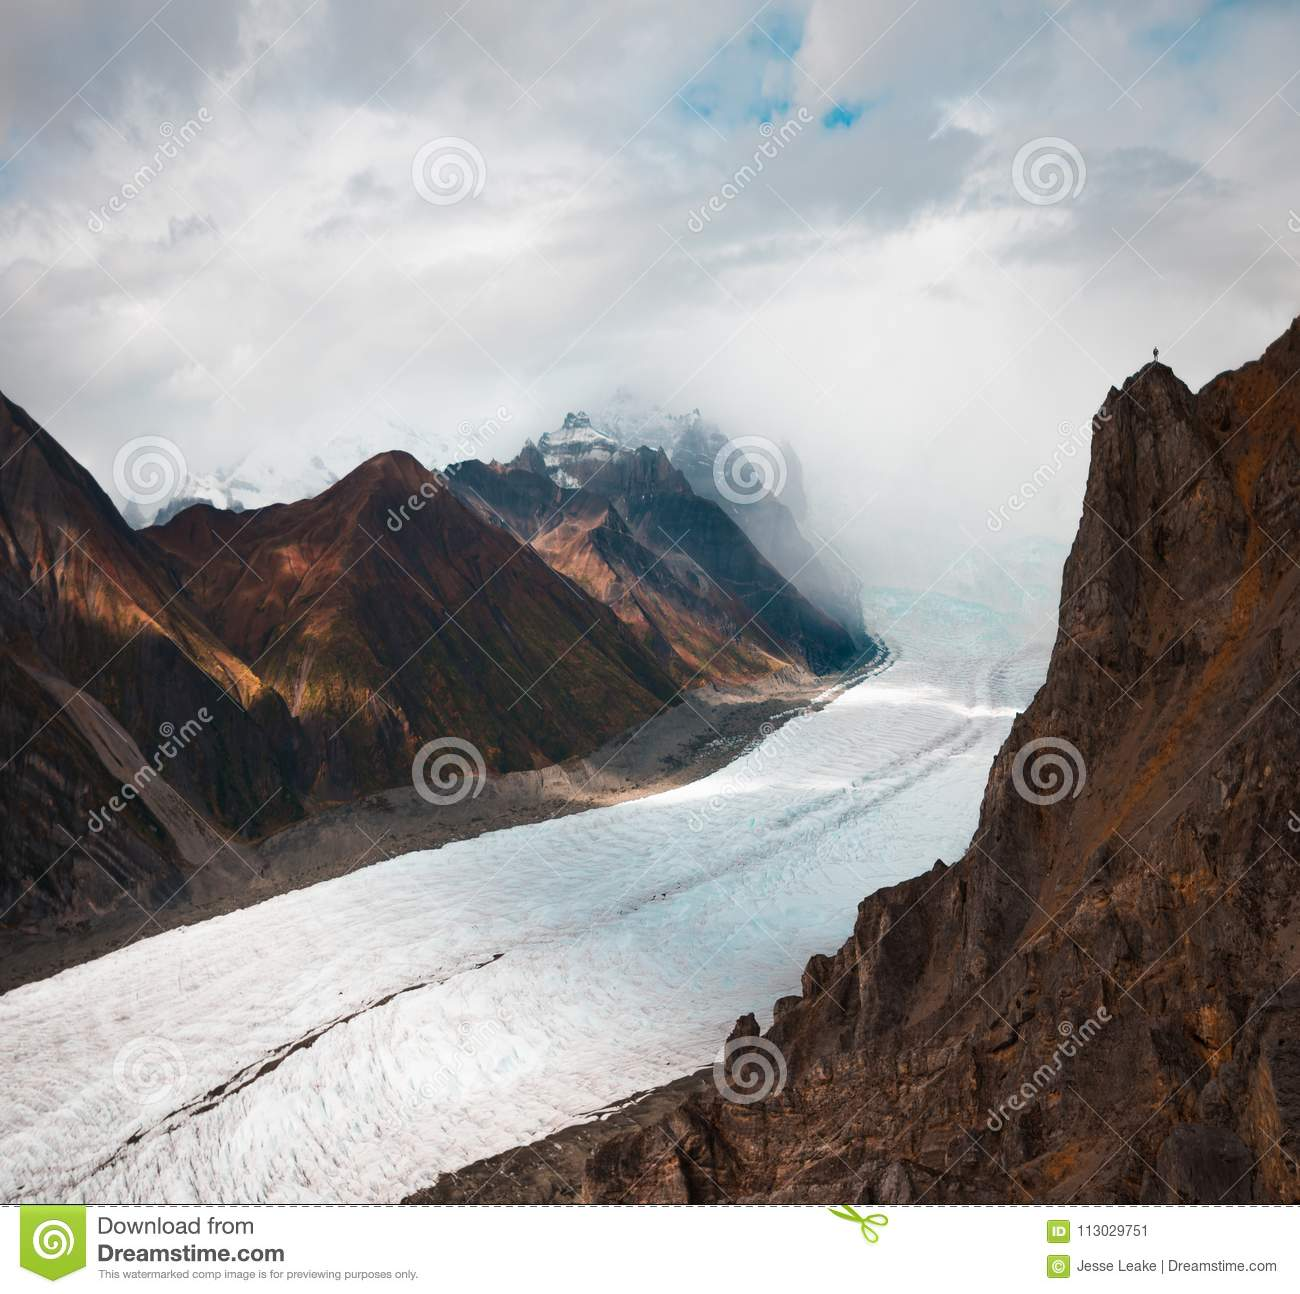 Root Glacier tumbles down from the heights of the Wrangell St Elias Mountains